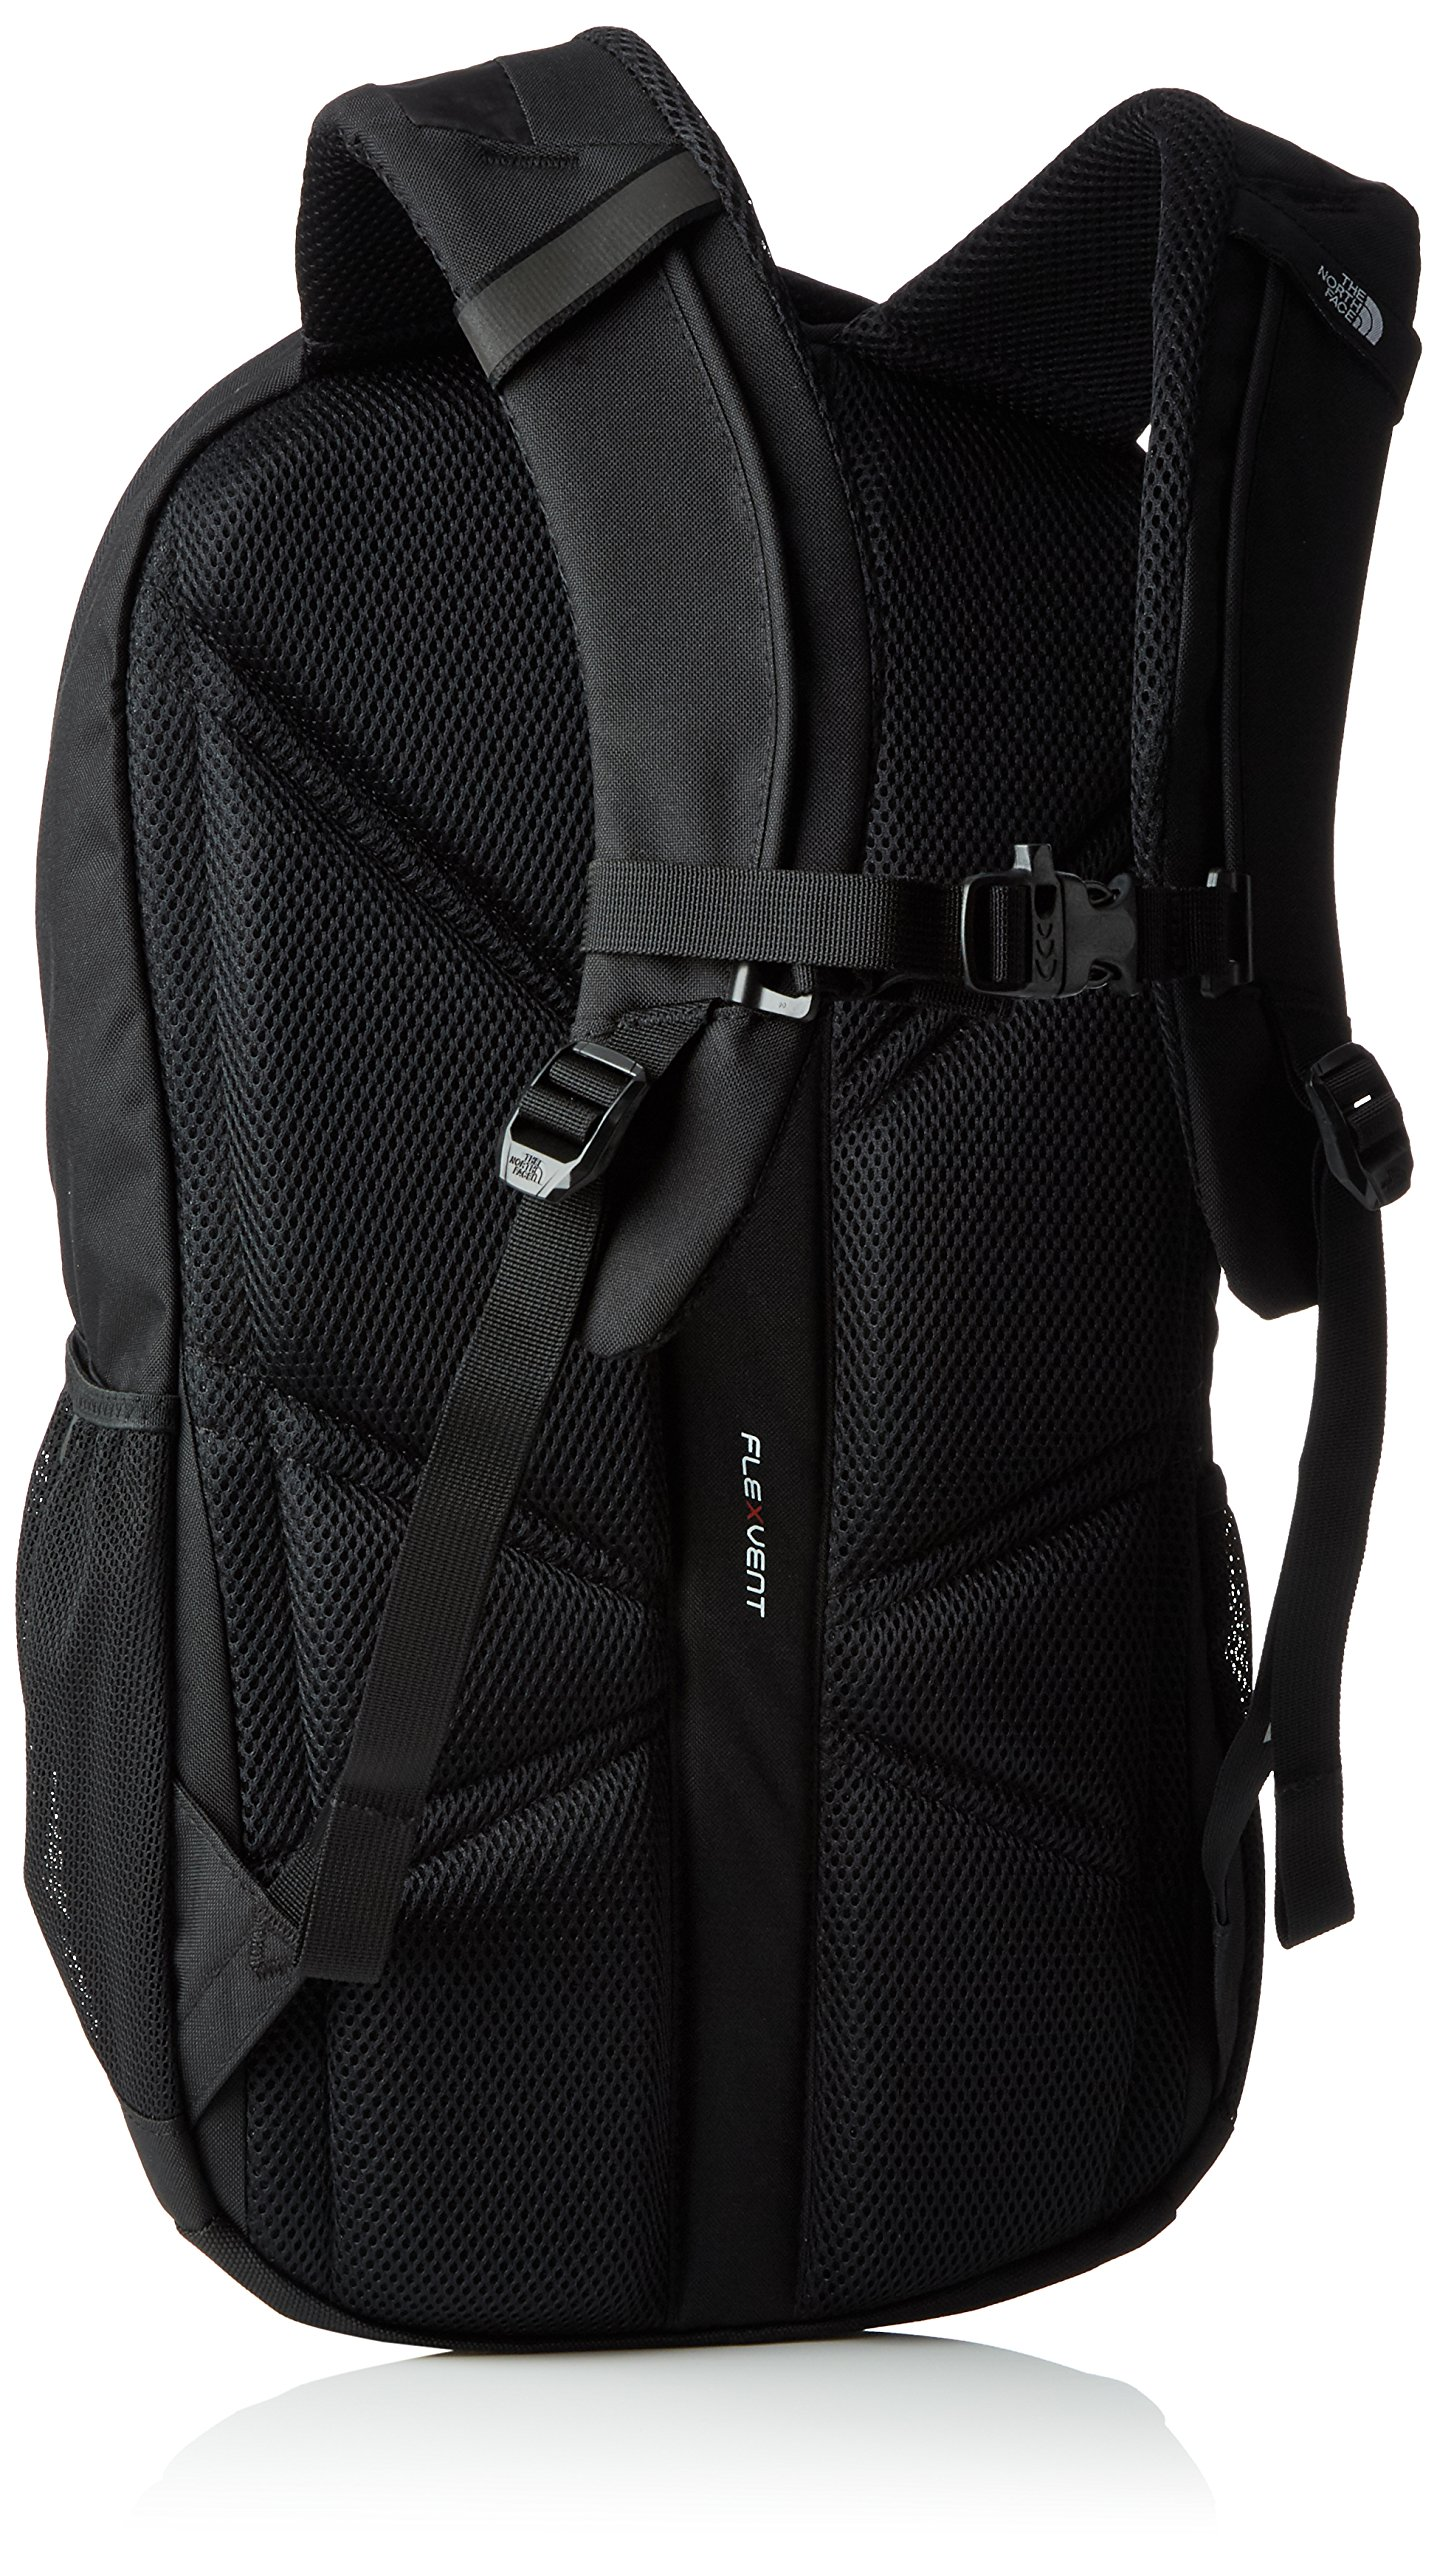 91rveiKcpcL - The North Face Rucksack Vault Mochila, Unisex